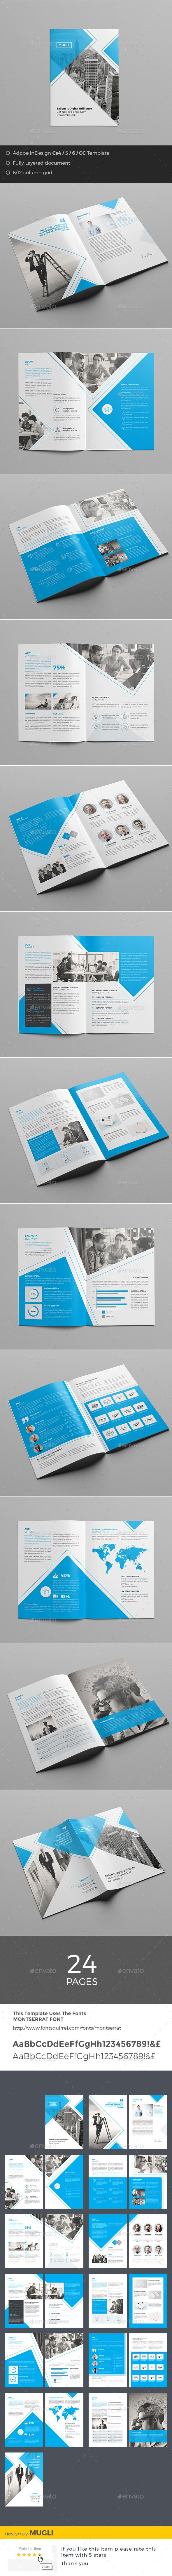 Business Brochure - Corporate Brochures